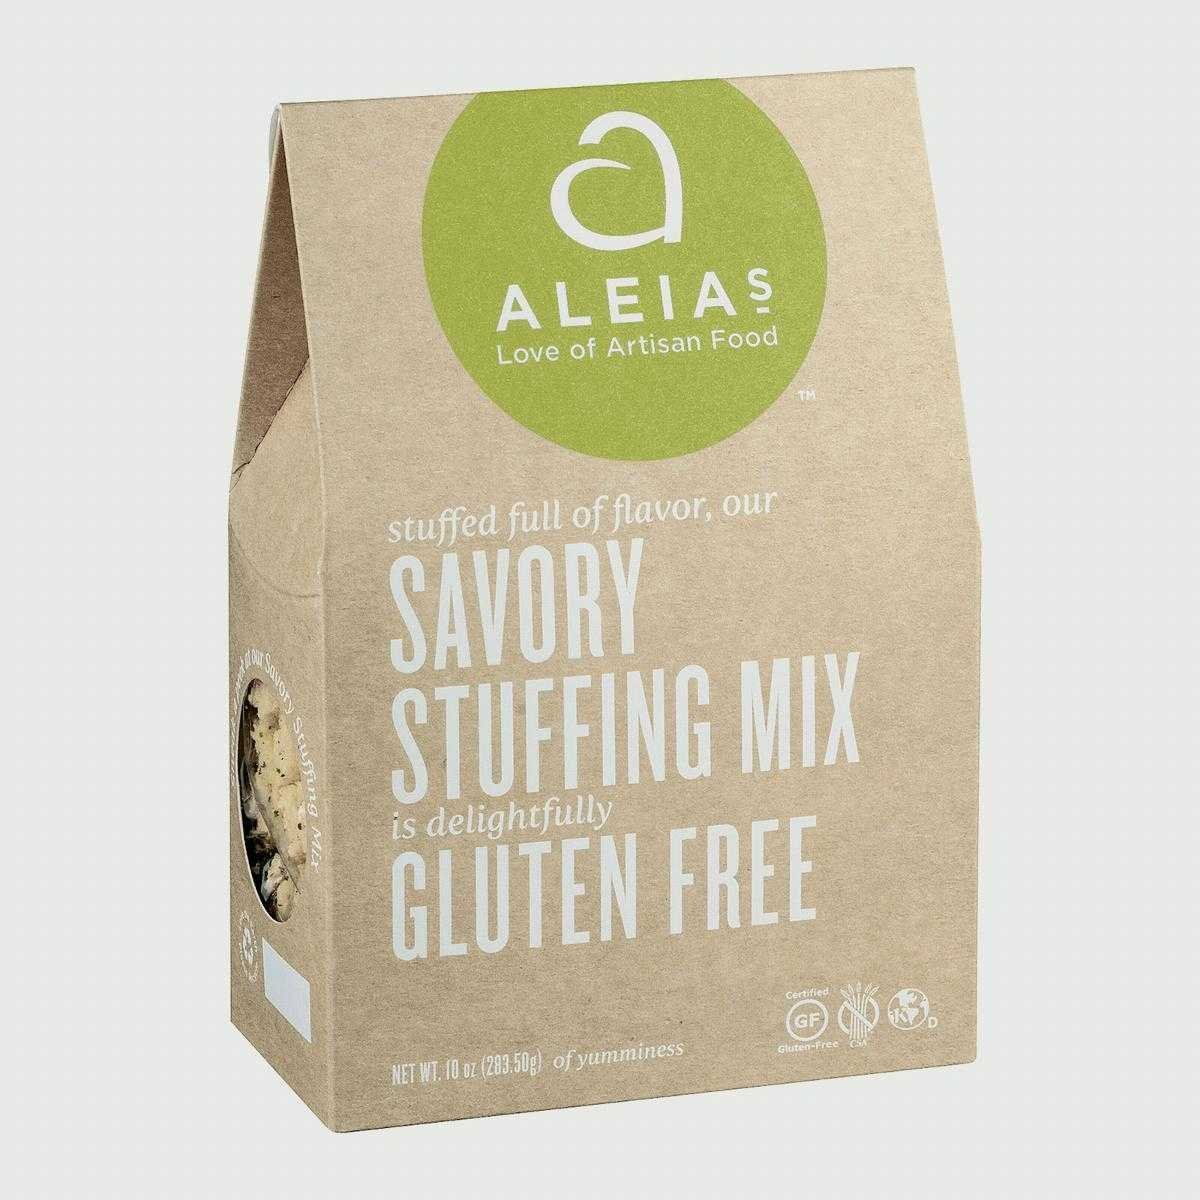 Aleia'S, Savory Stuffing Mix; Gluten Free, Pack of 6, Size - 10 OZ, Quantity - 1 Case by Aleias